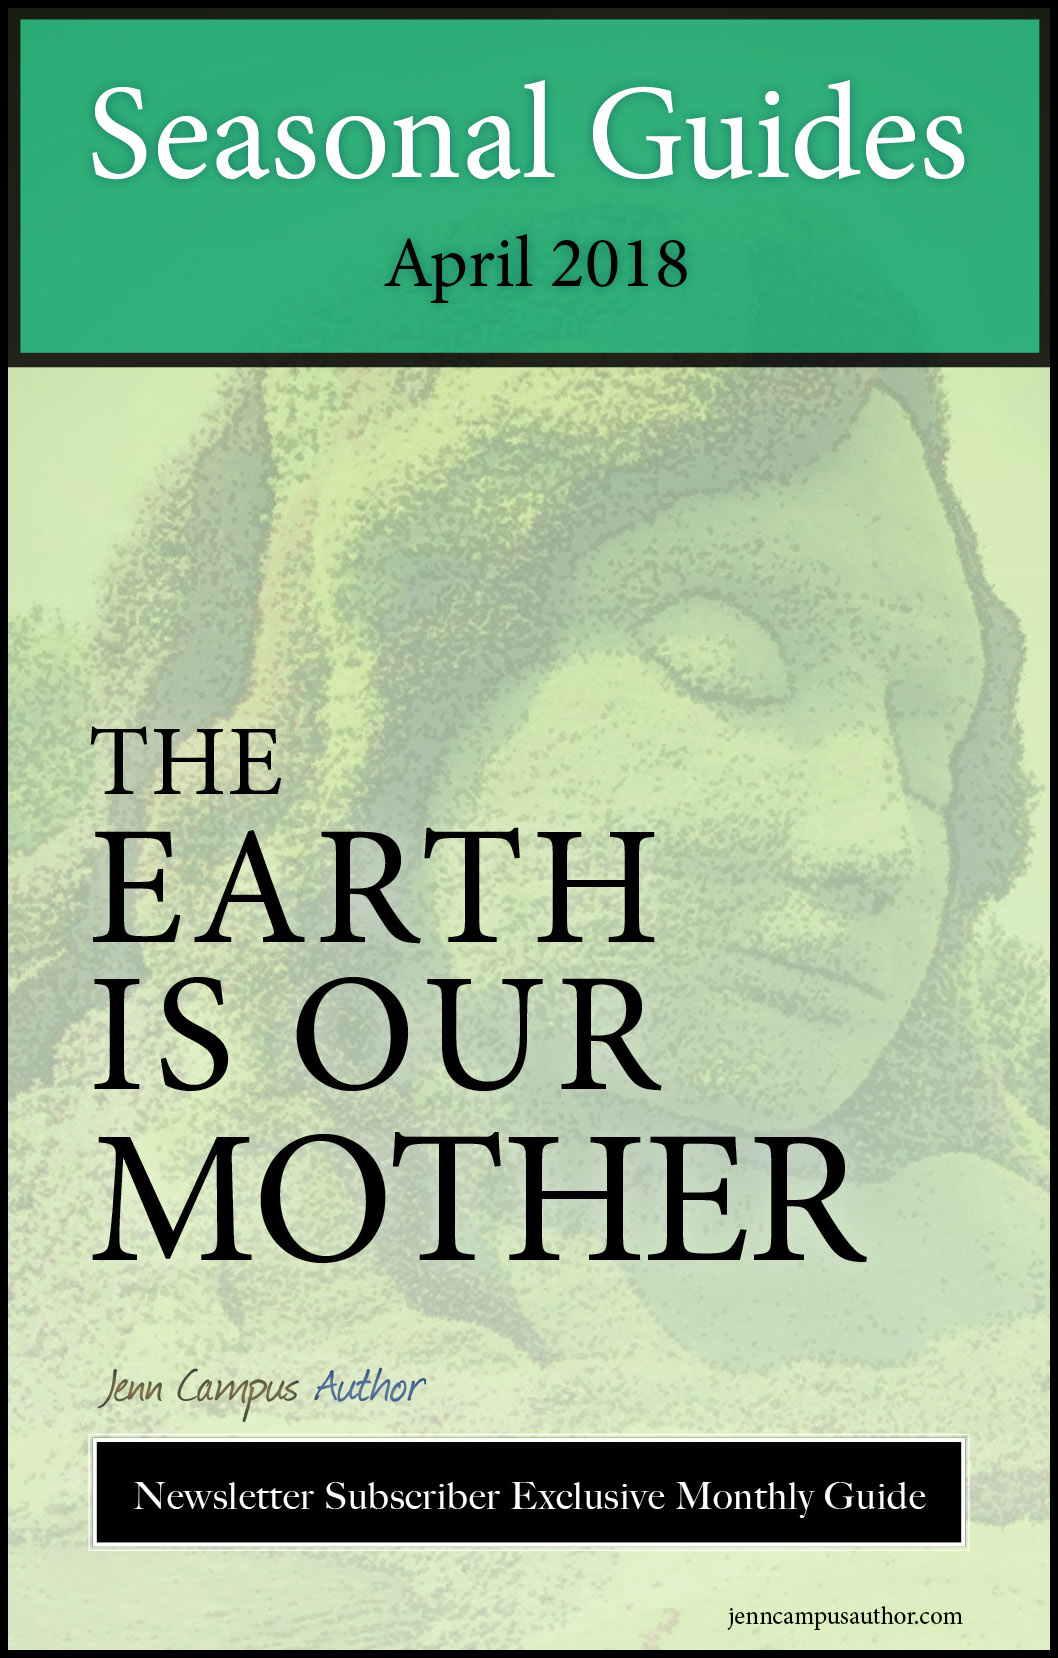 Seasonal Guide for April 2018 - The Earth is Our Mother